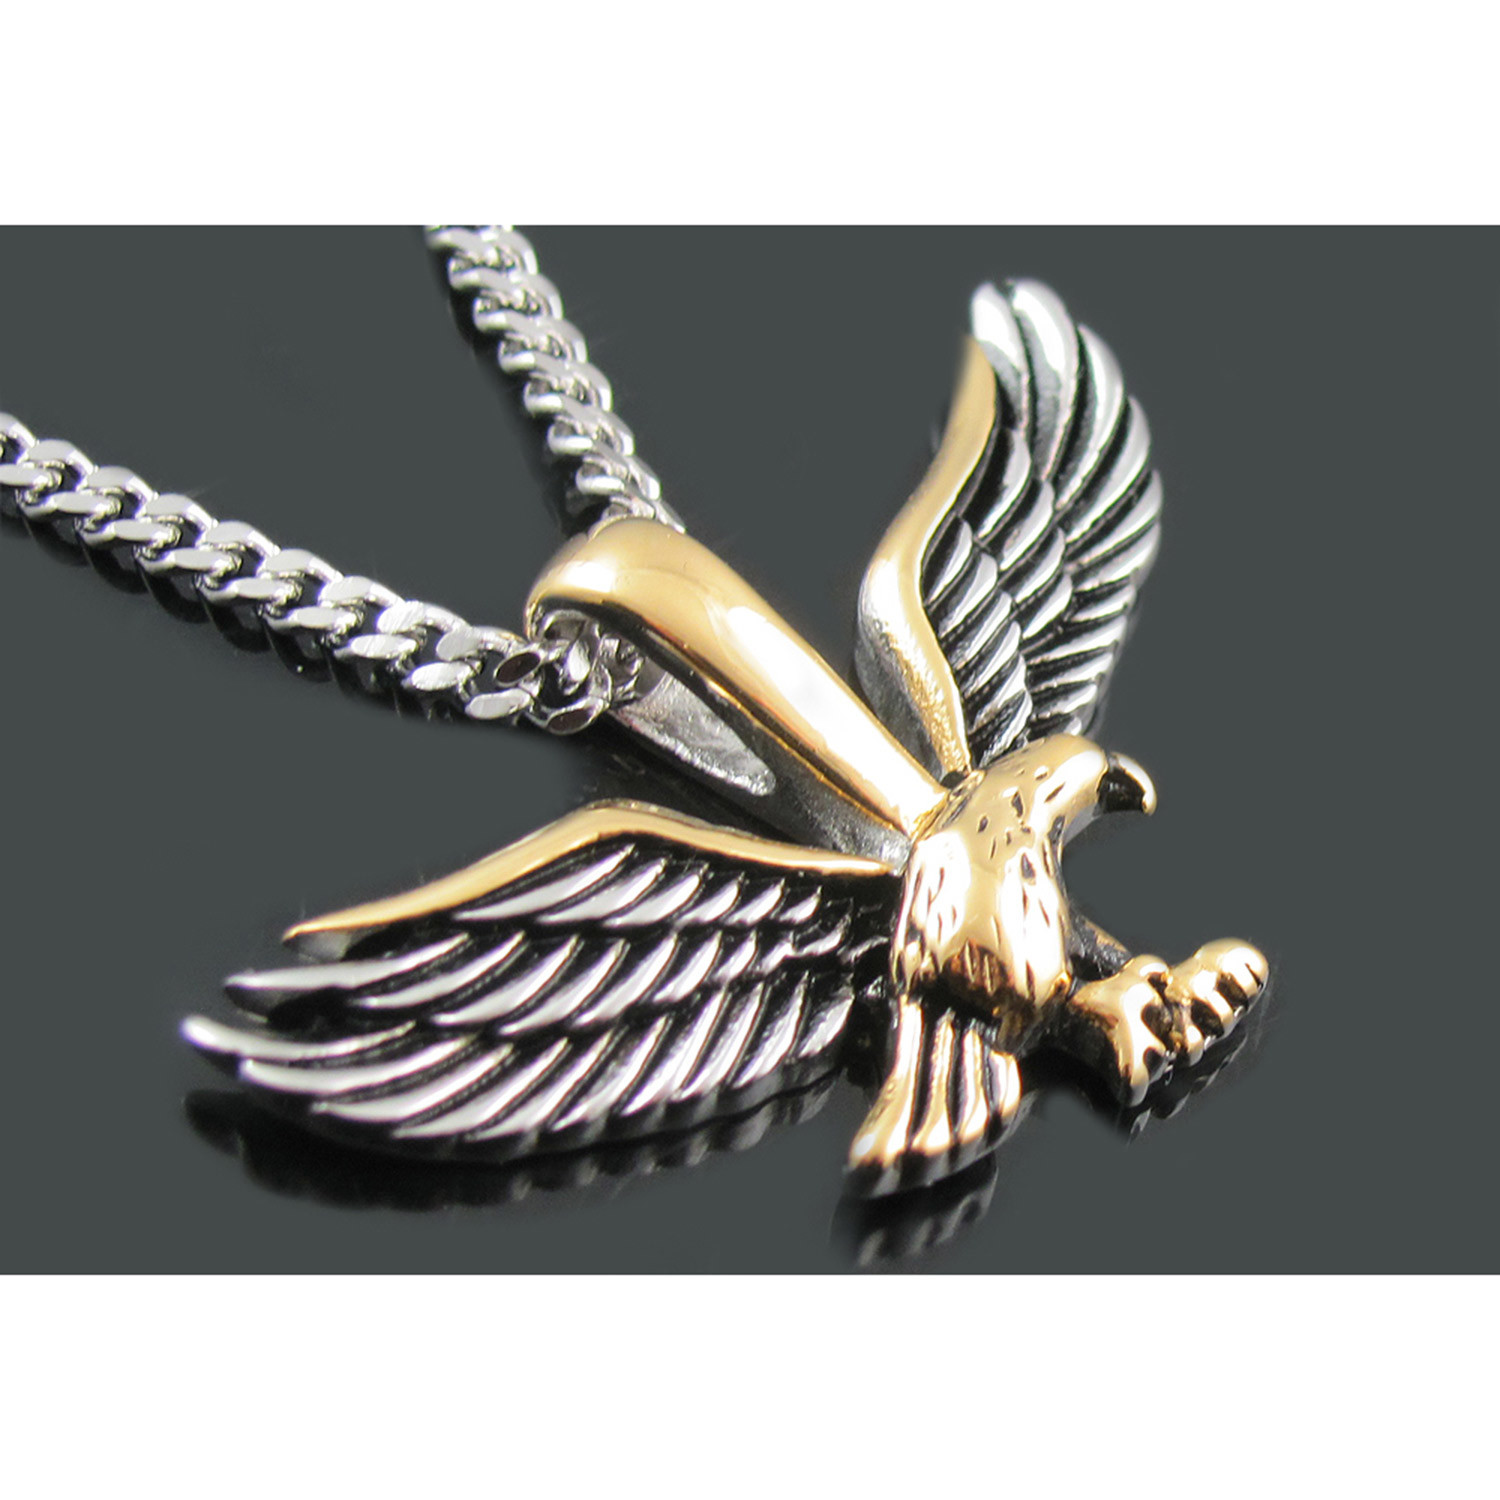 eagle chain pendant rope giant jewelry bold statement necklace tri color patriotic large pin